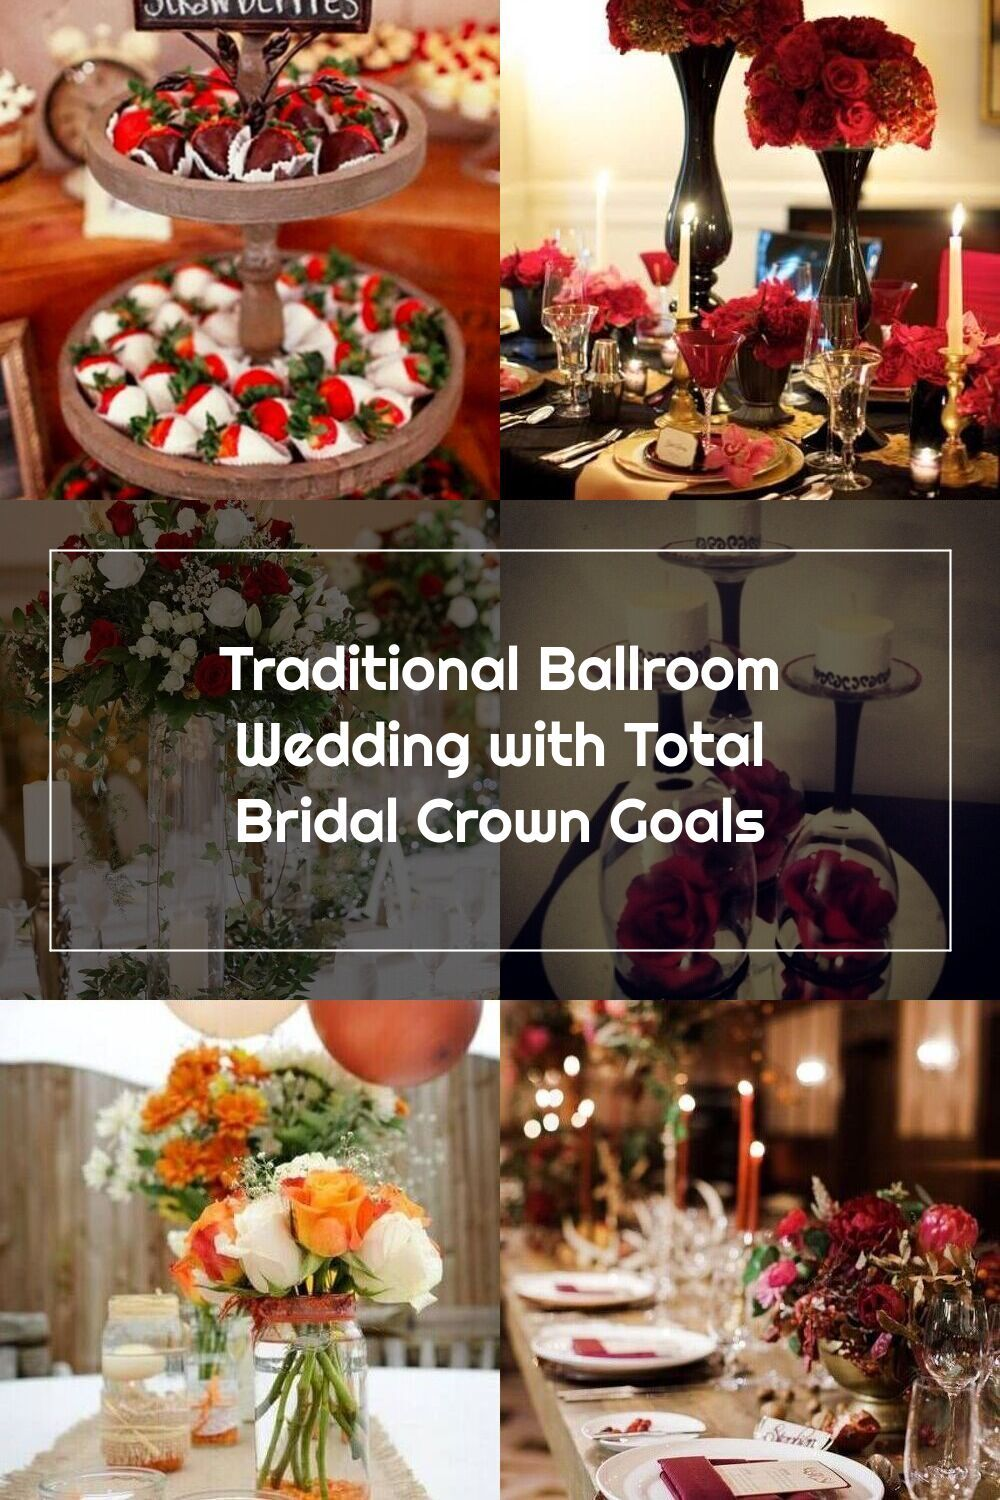 Tall Wedding Centerpieces With Red Roses And Greenery For A Classic Winter Wedding At The John Marshall Ballrooms In Richmond Virginia Flowers Wedding Weddin Em 2020